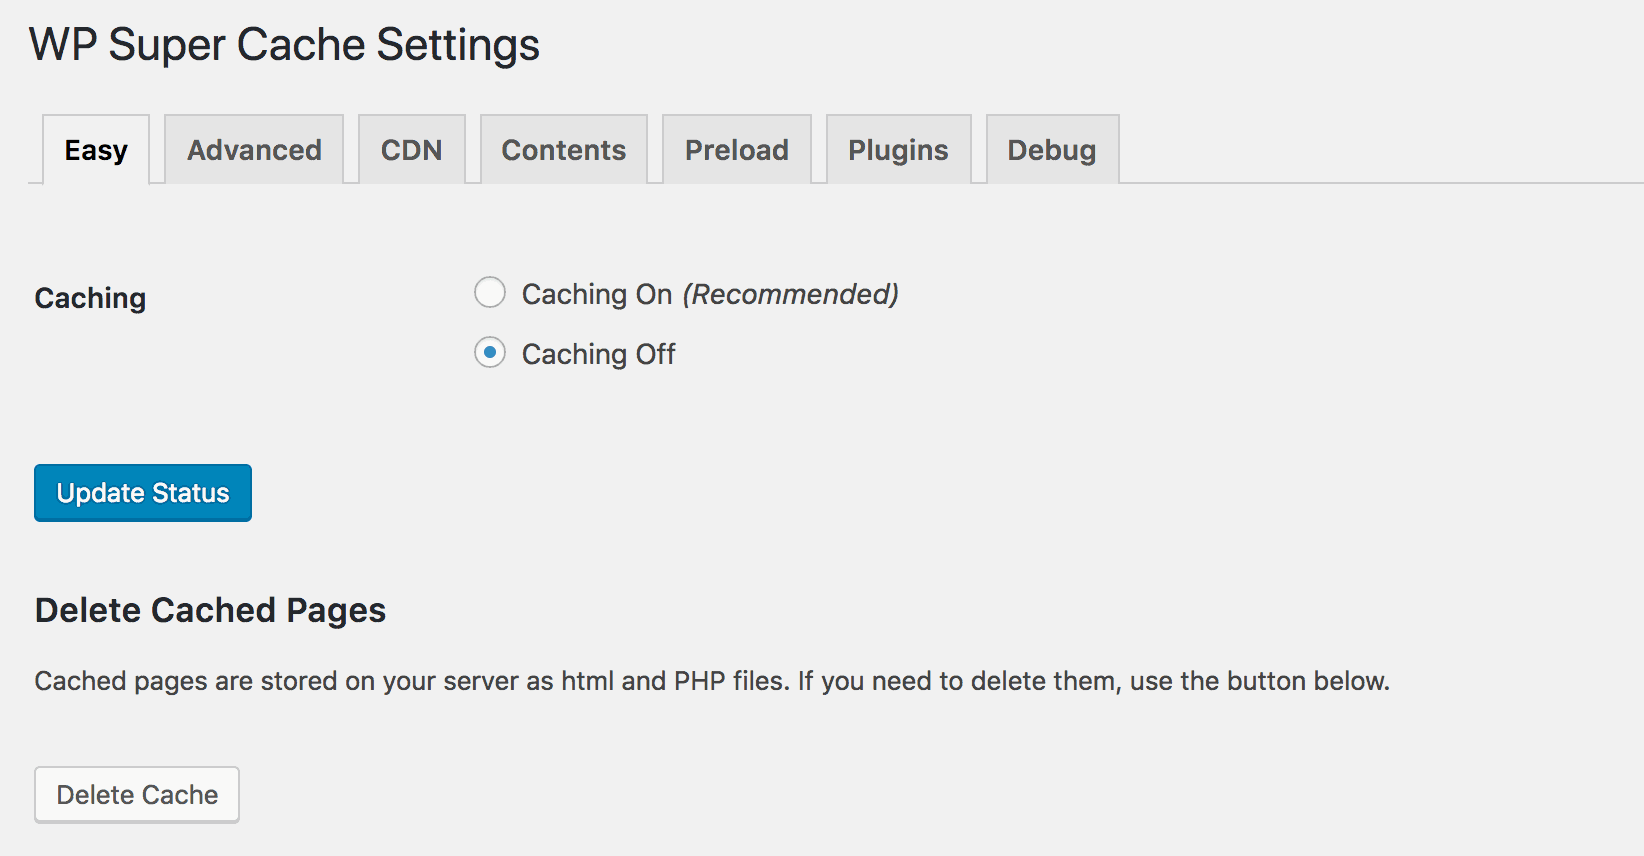 Configuring the settings for WP Super Cache.